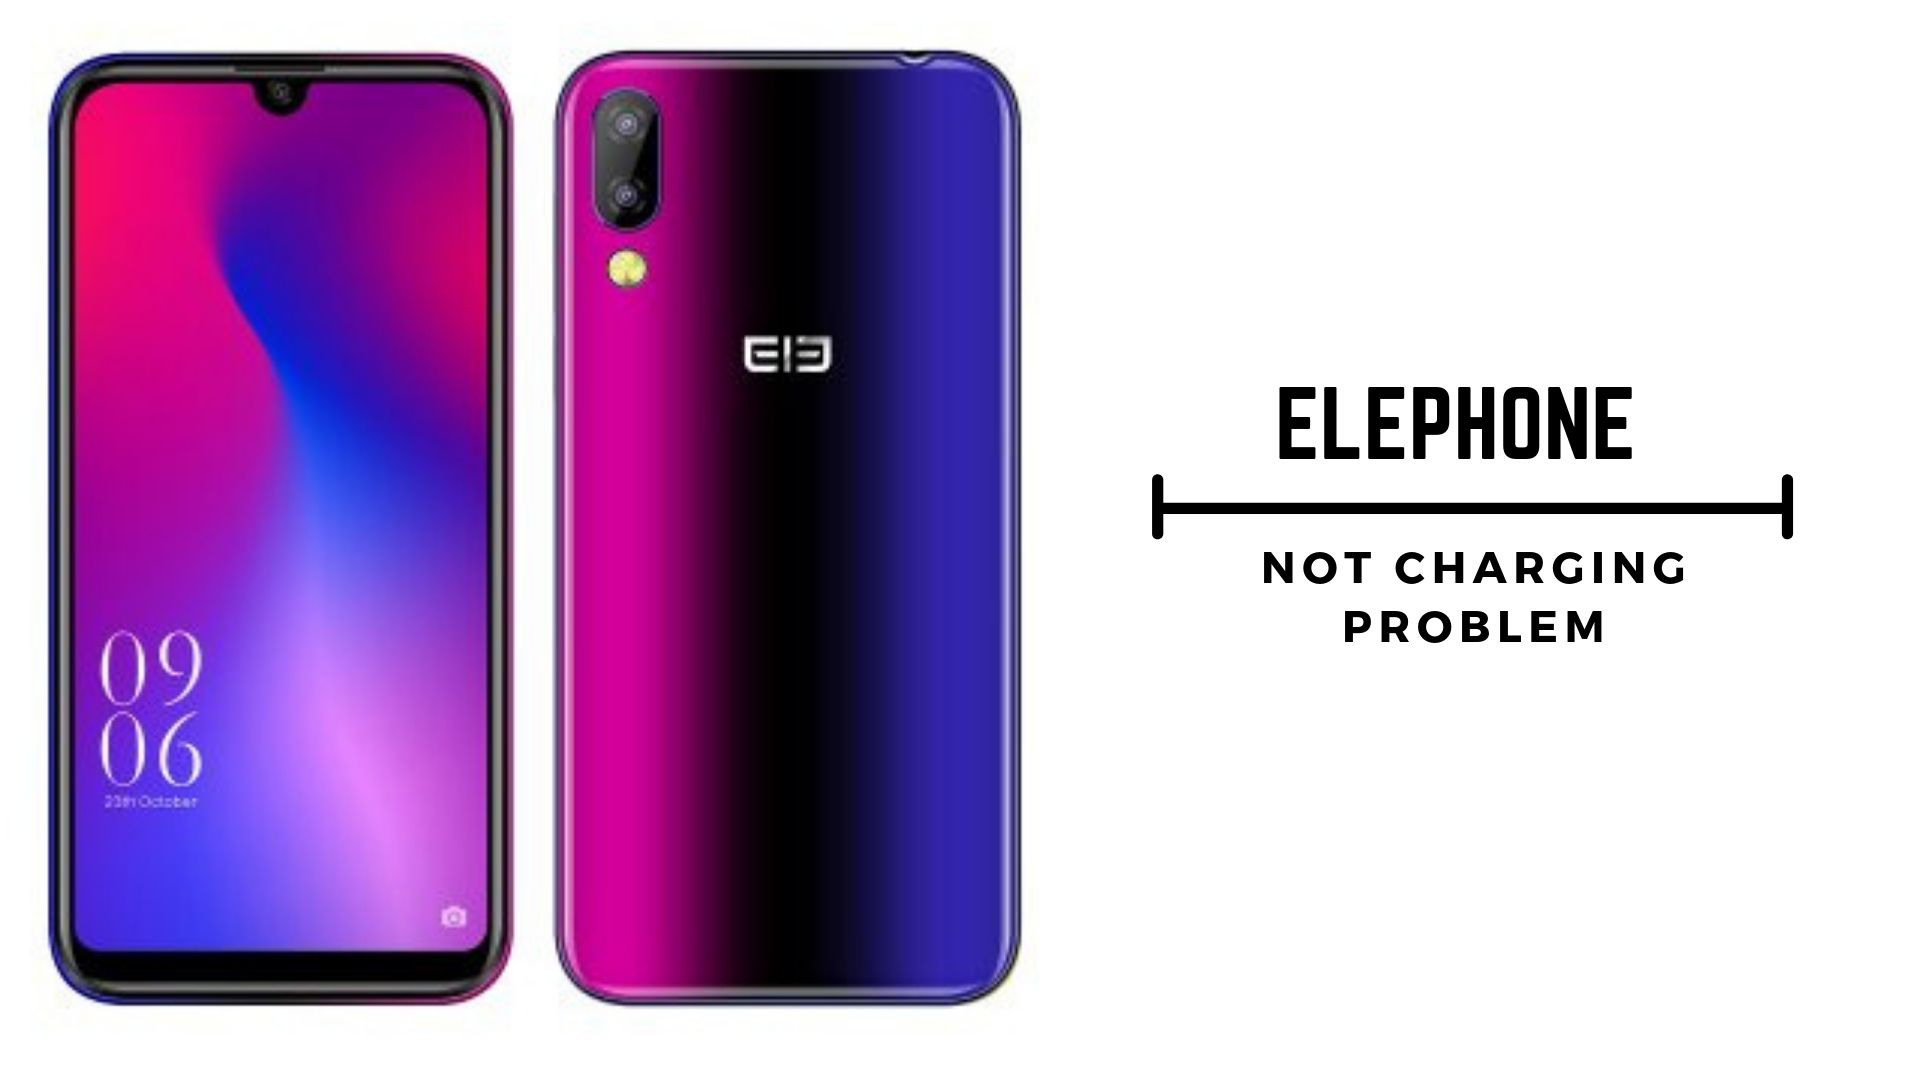 How to Fix Elephone Not Charging Problem [Troubleshoot]